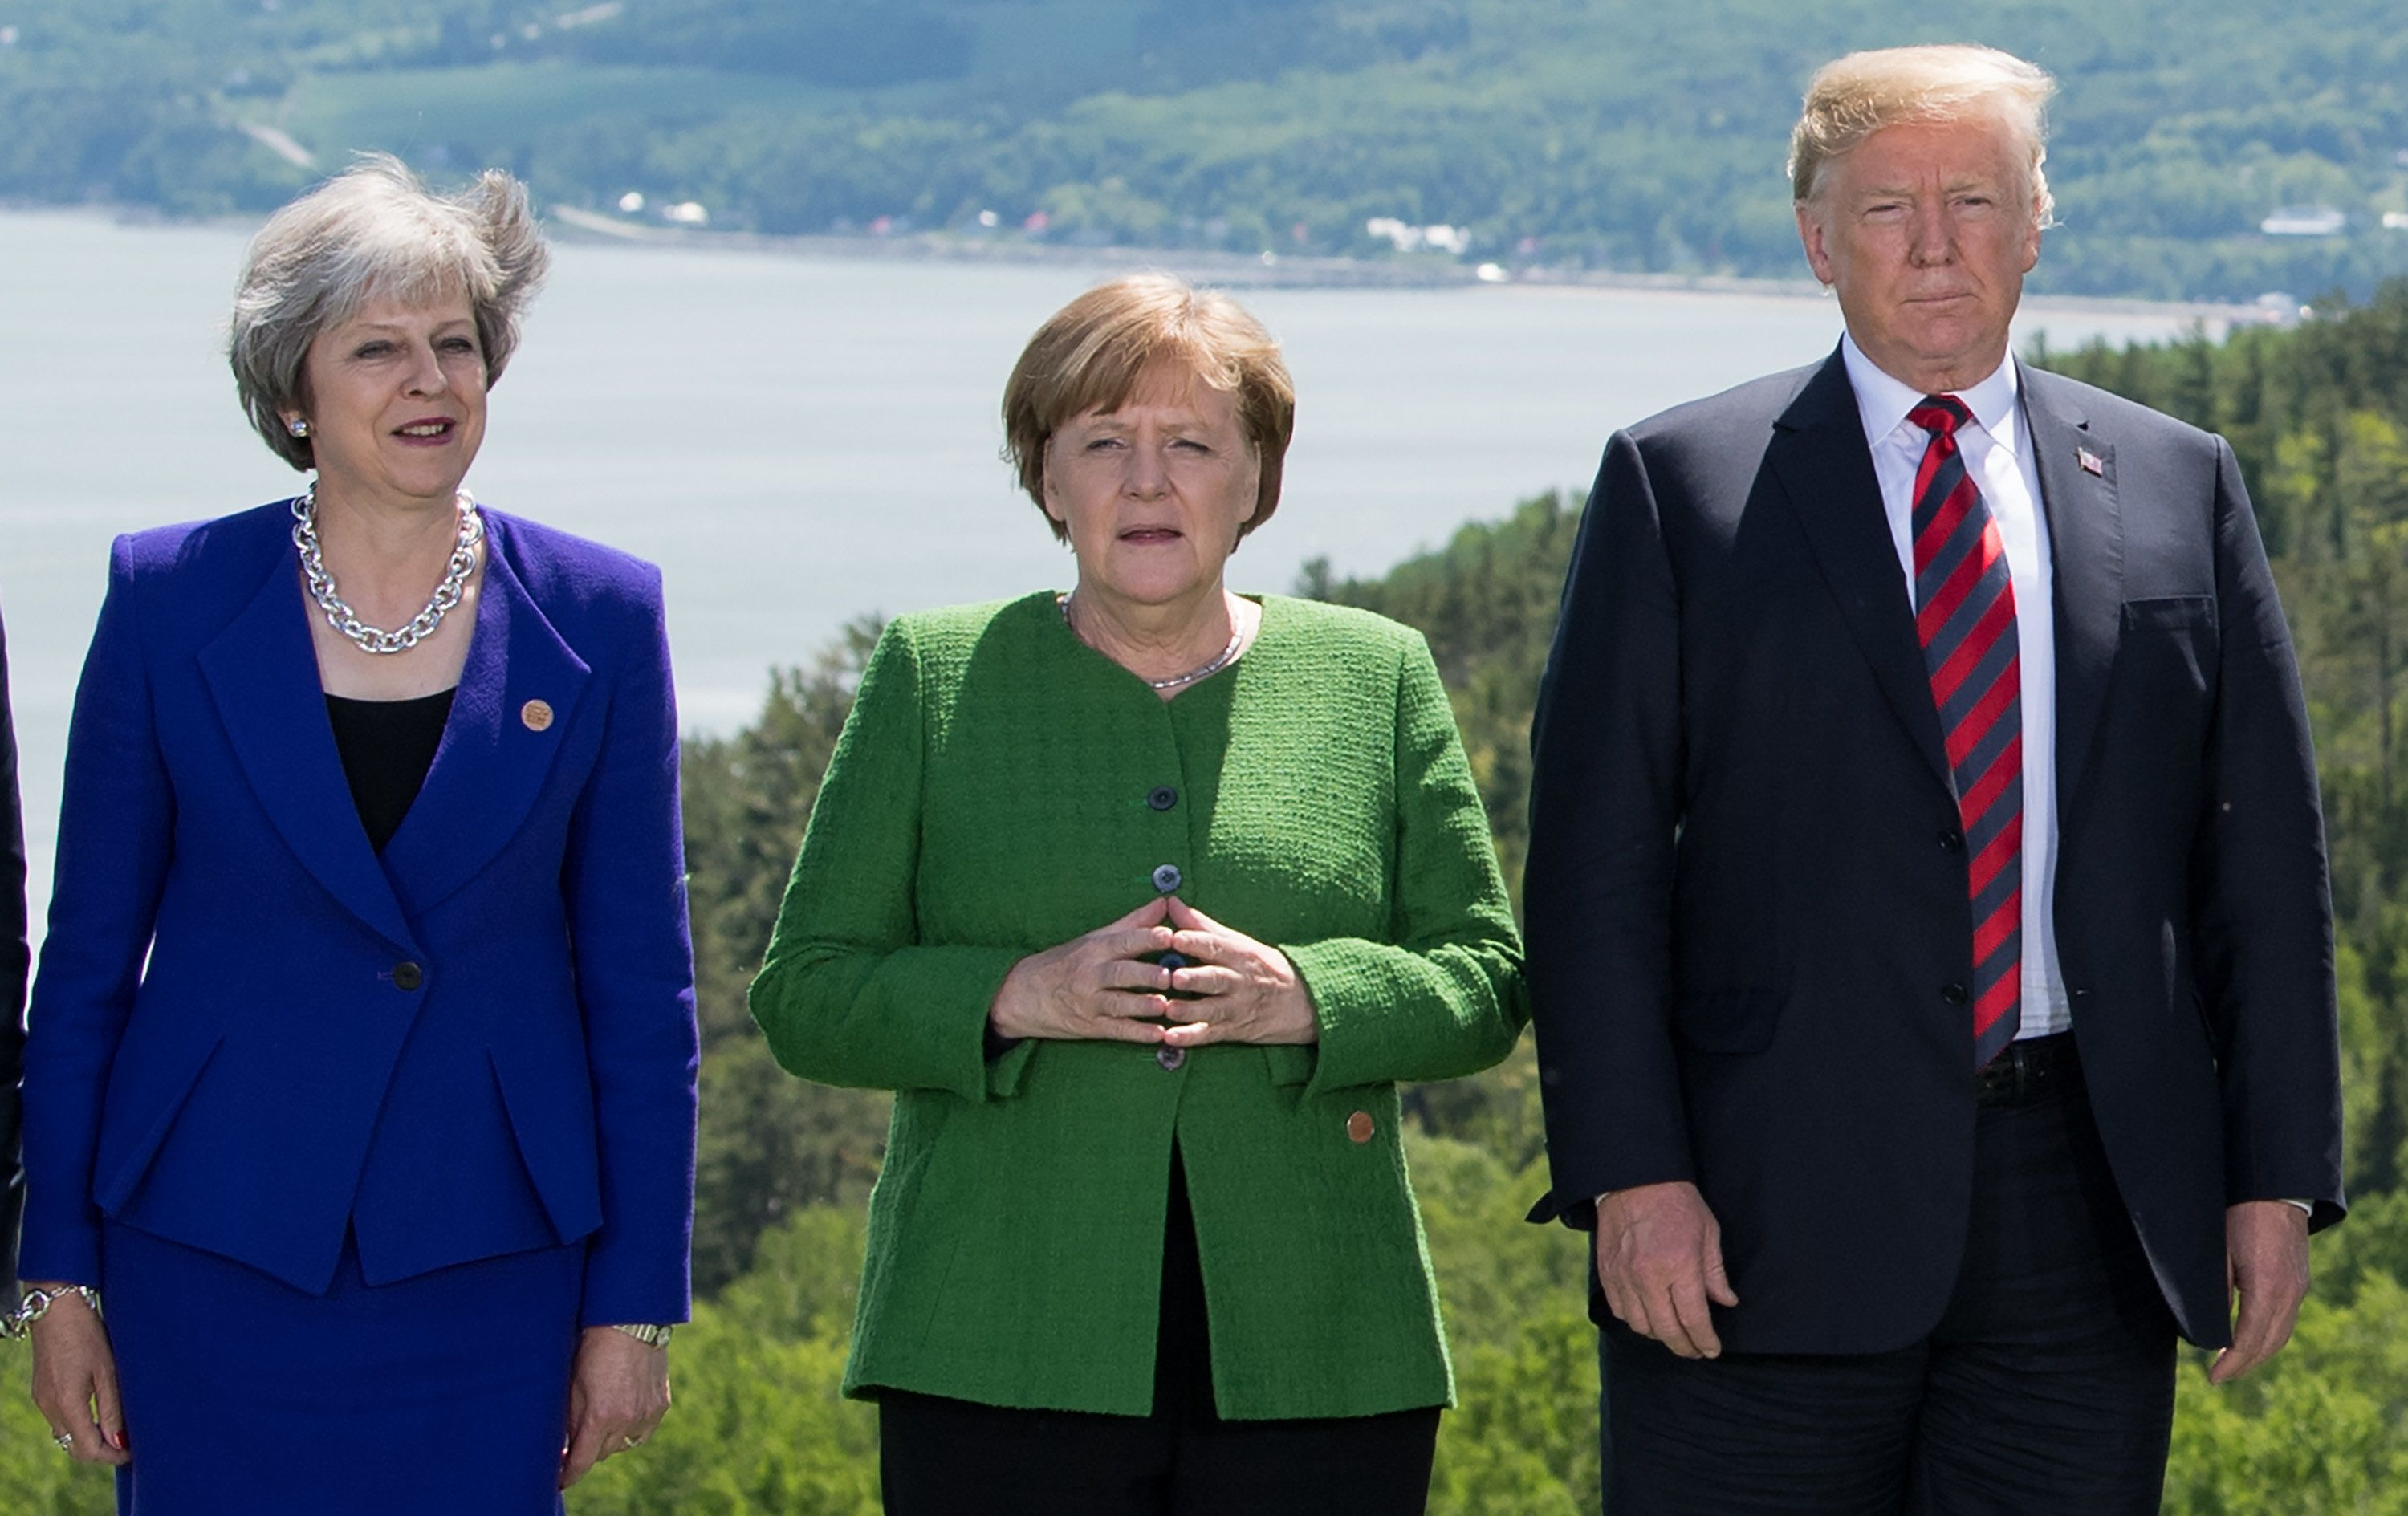 Trump's G7 bust-up shows risks for North Korea summit